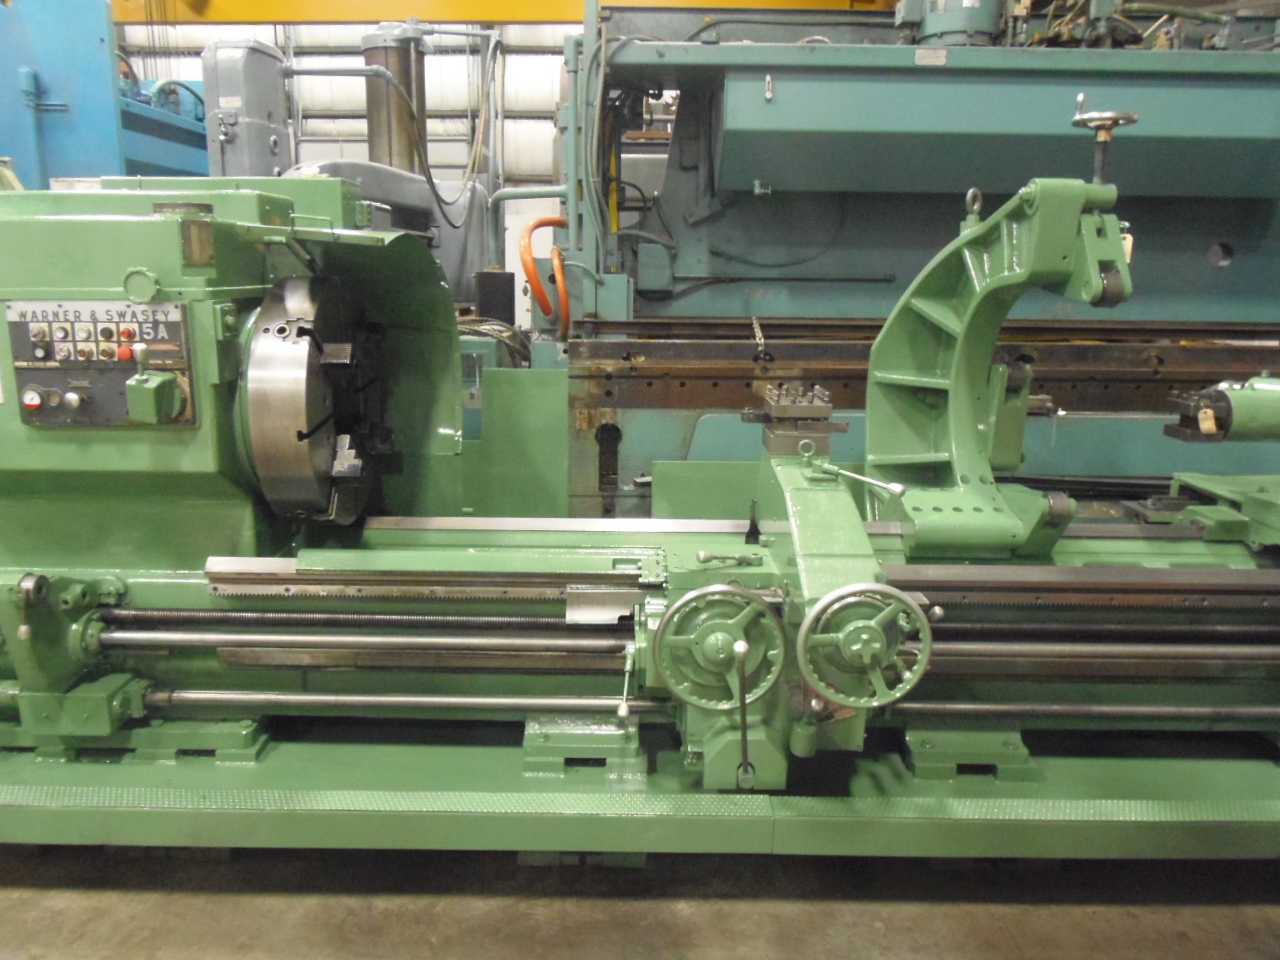 "5A WARNER & SWASEY, MODEL 3600, THREADING, TAPER, 194"" TURRET TO CHUCK FACE, 12.5"" HOLE, ROLLER STEADY REST, 1981 NICE"